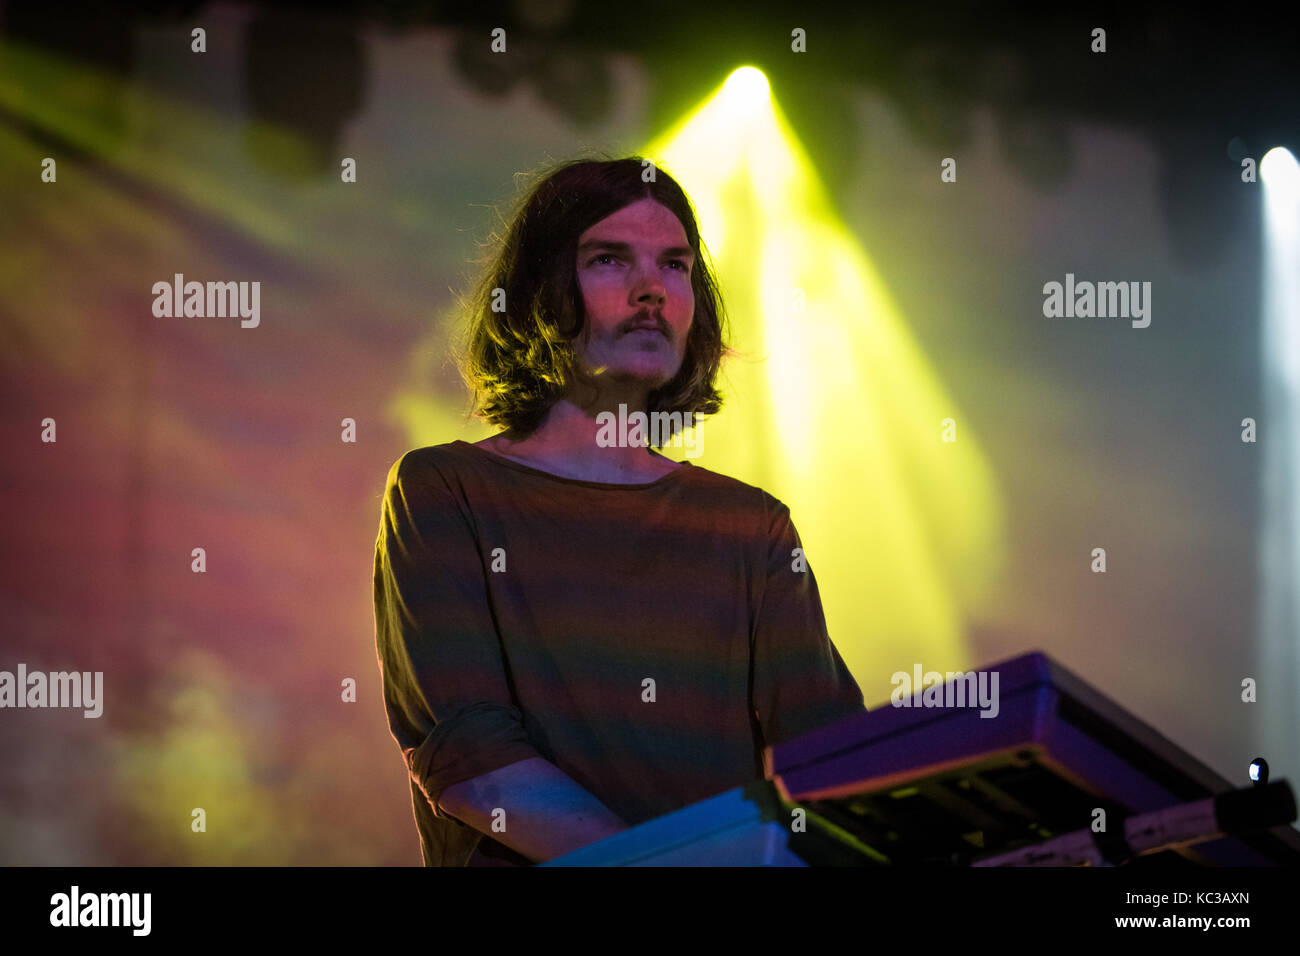 The Australian musical project Tame Impala performs a live concert at the music festival Lollapalooza 2015 in Berlin. Stock Photo